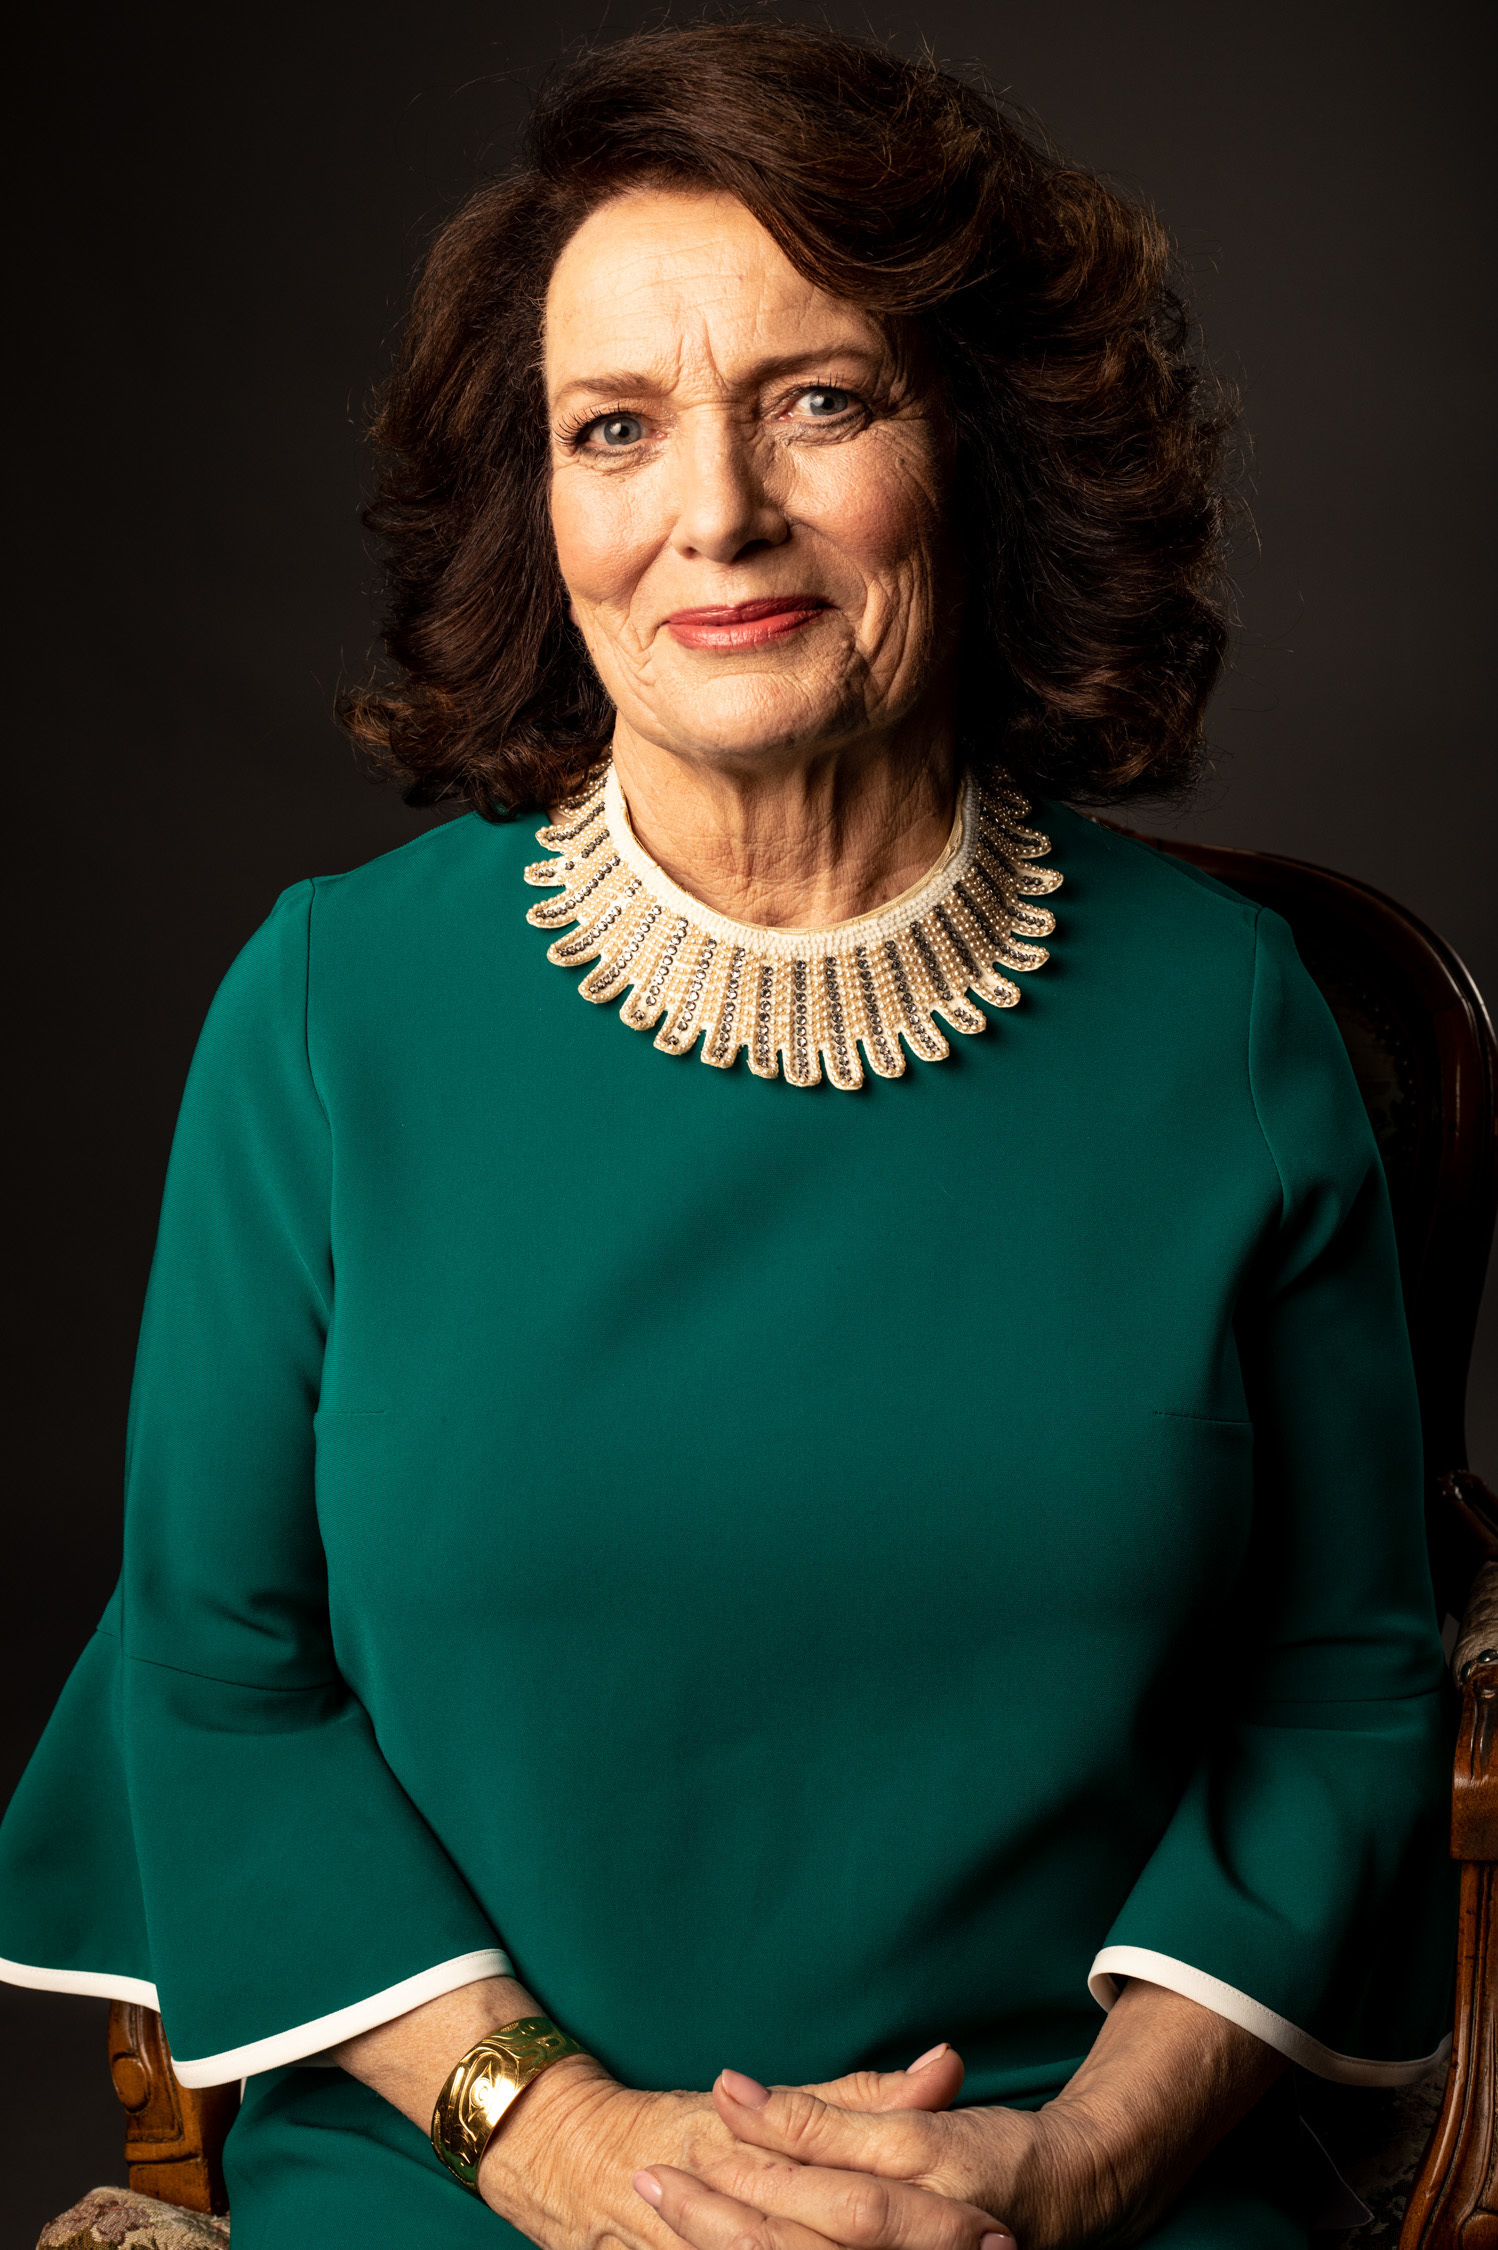 Margaret Trudeau Is A Certain Woman Of An Age And A Mental Health Advocate Npr